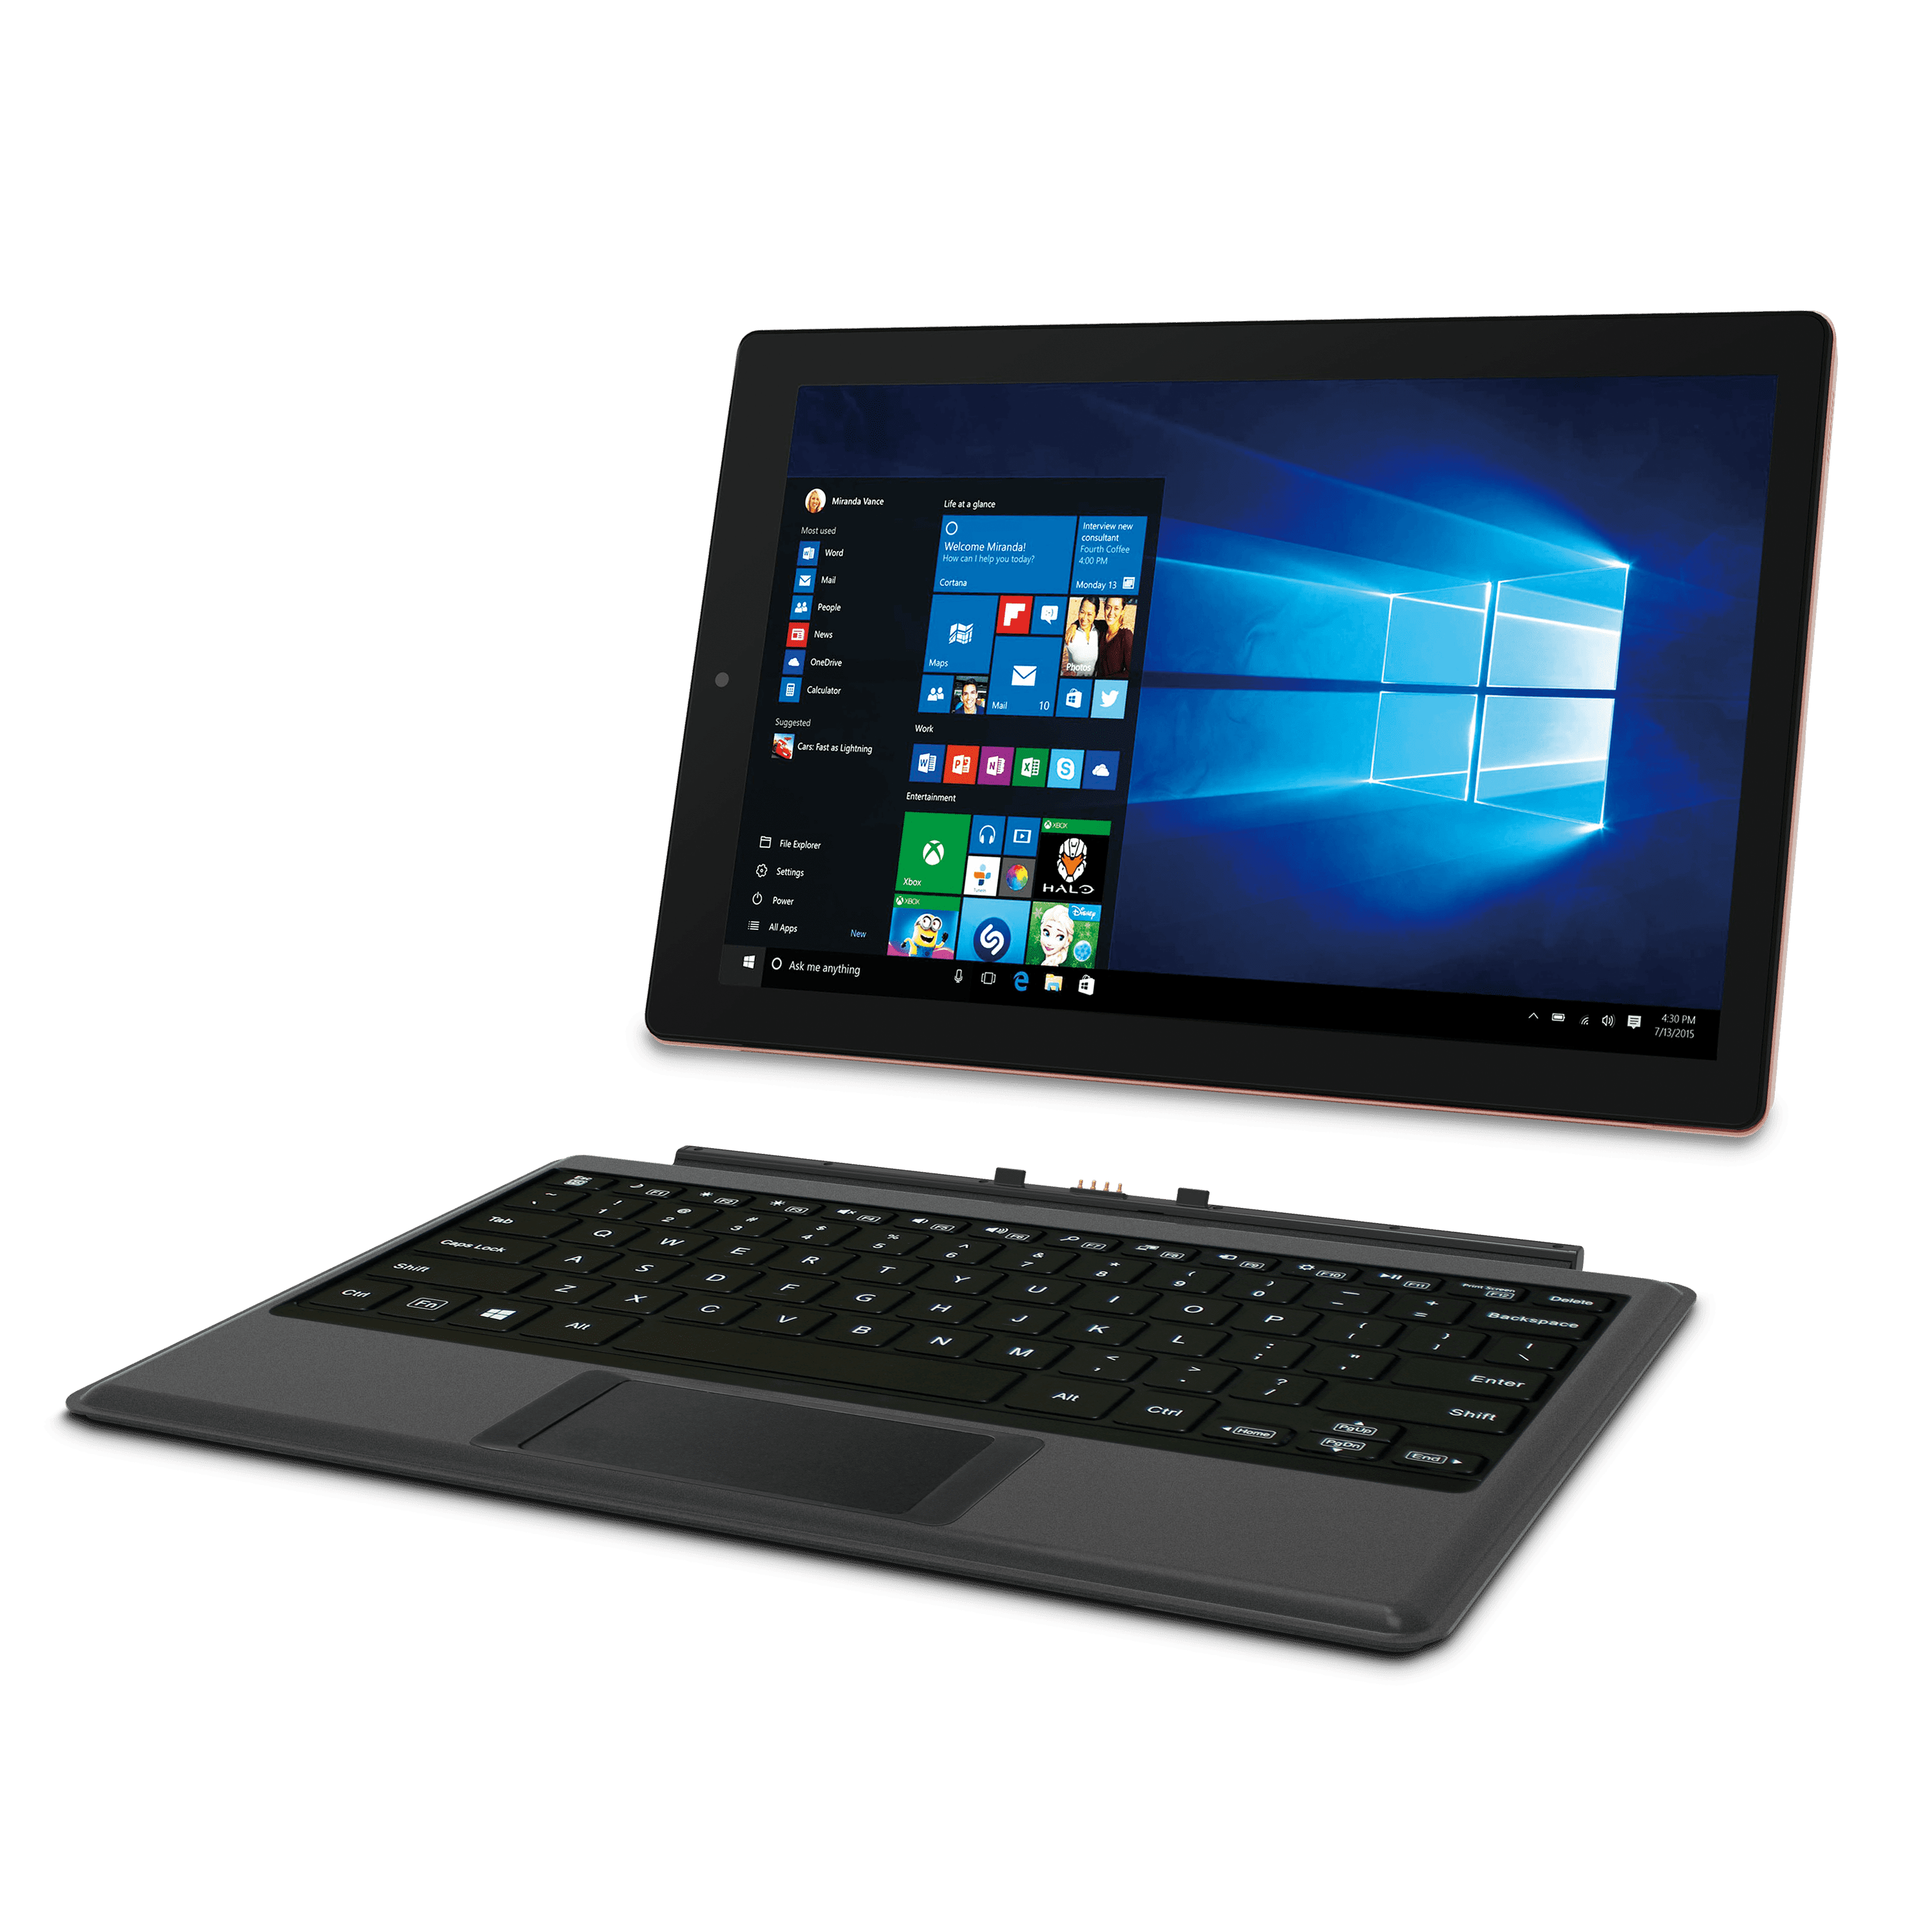 Tablet Computers - 108 Top Reviews